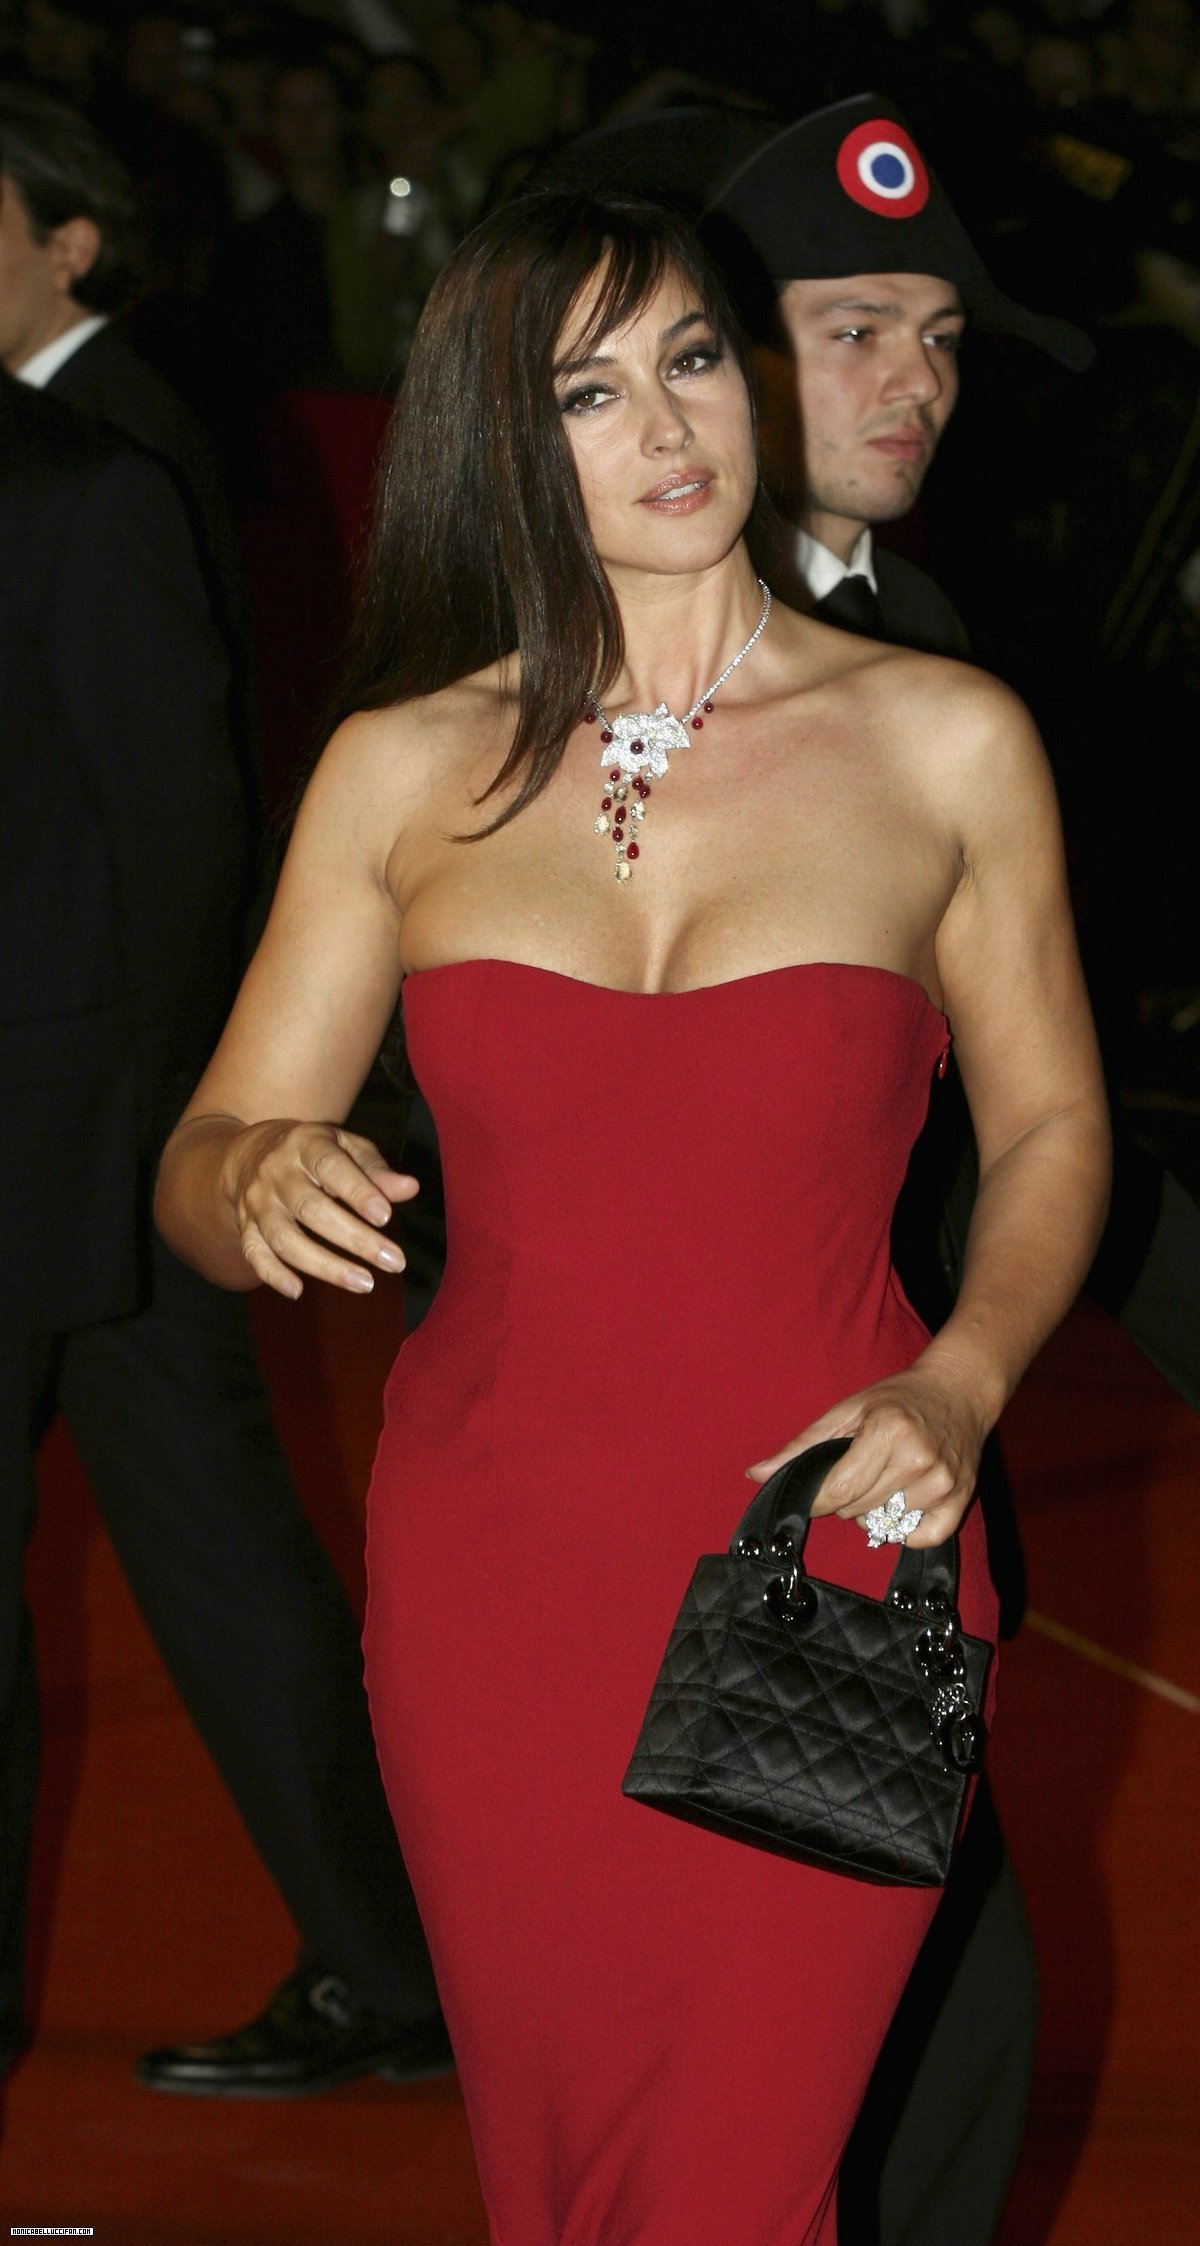 Sexy Monica Bellucci in Red Dress - Sexy Actress Pictures | Hot Actress Pictures - ActressSnaps.com